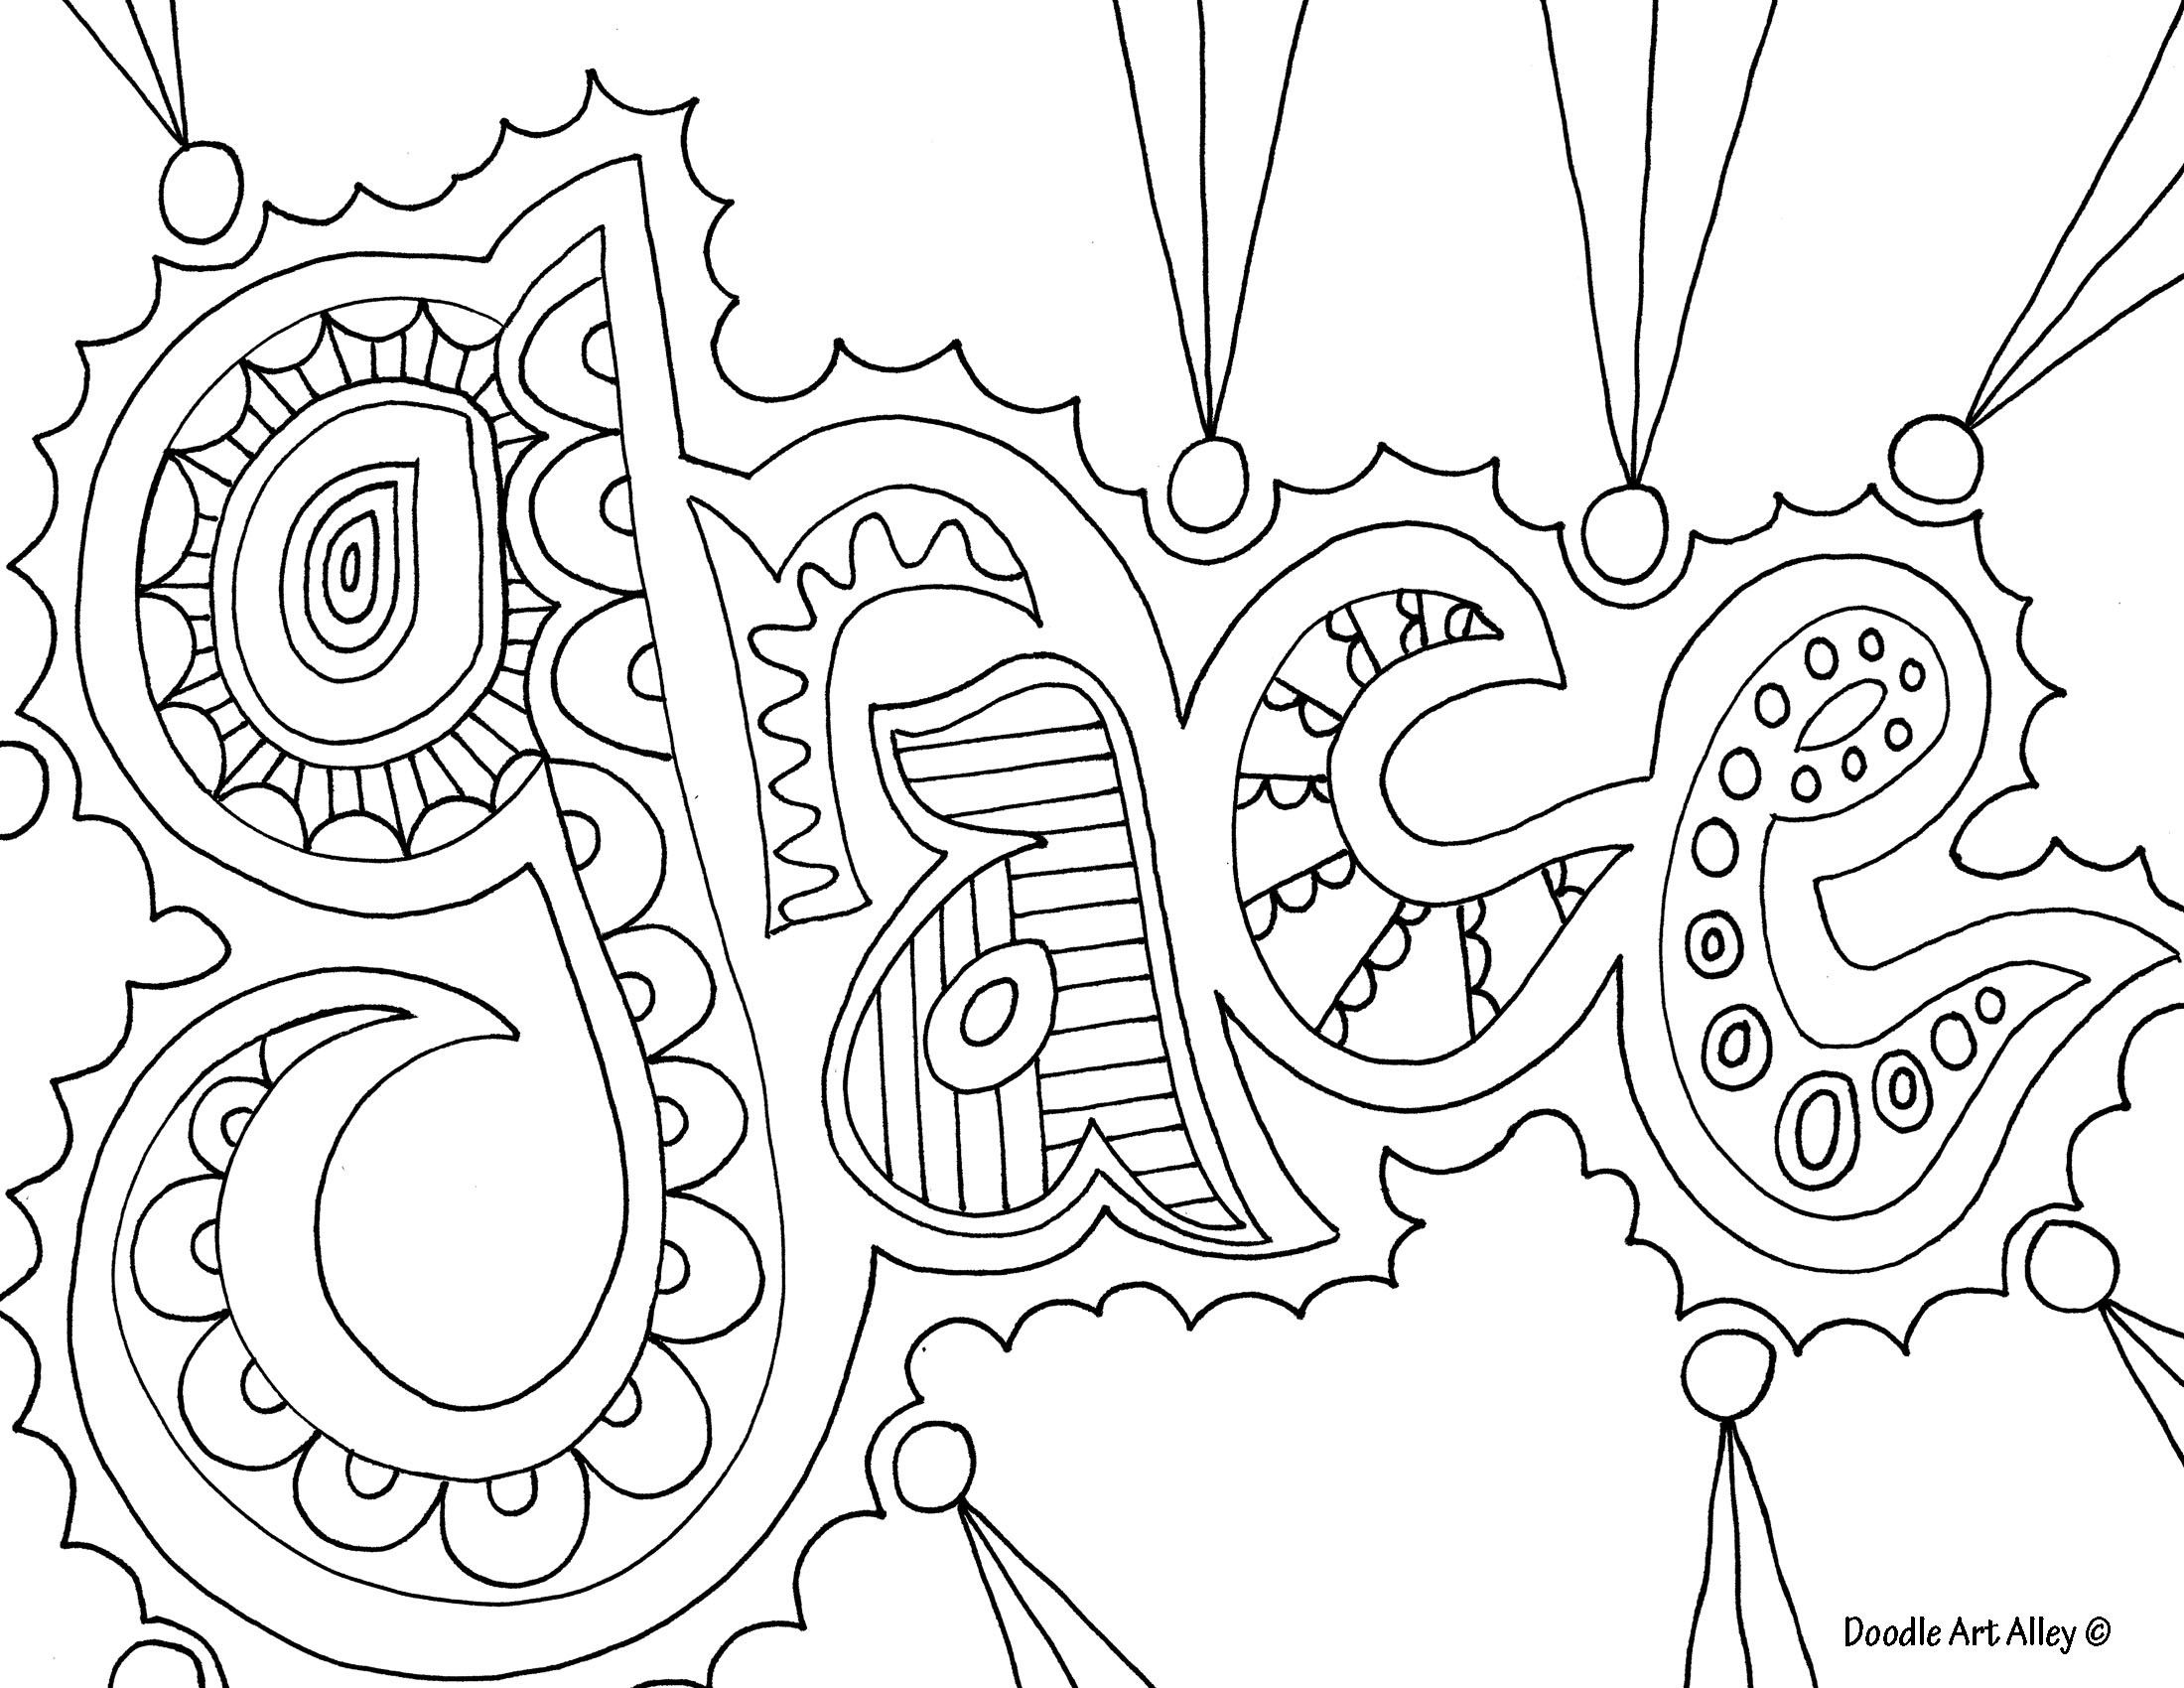 Free File Sharing And Storage Made Simple Christian Coloring Bible Coloring Pages Coloring Books